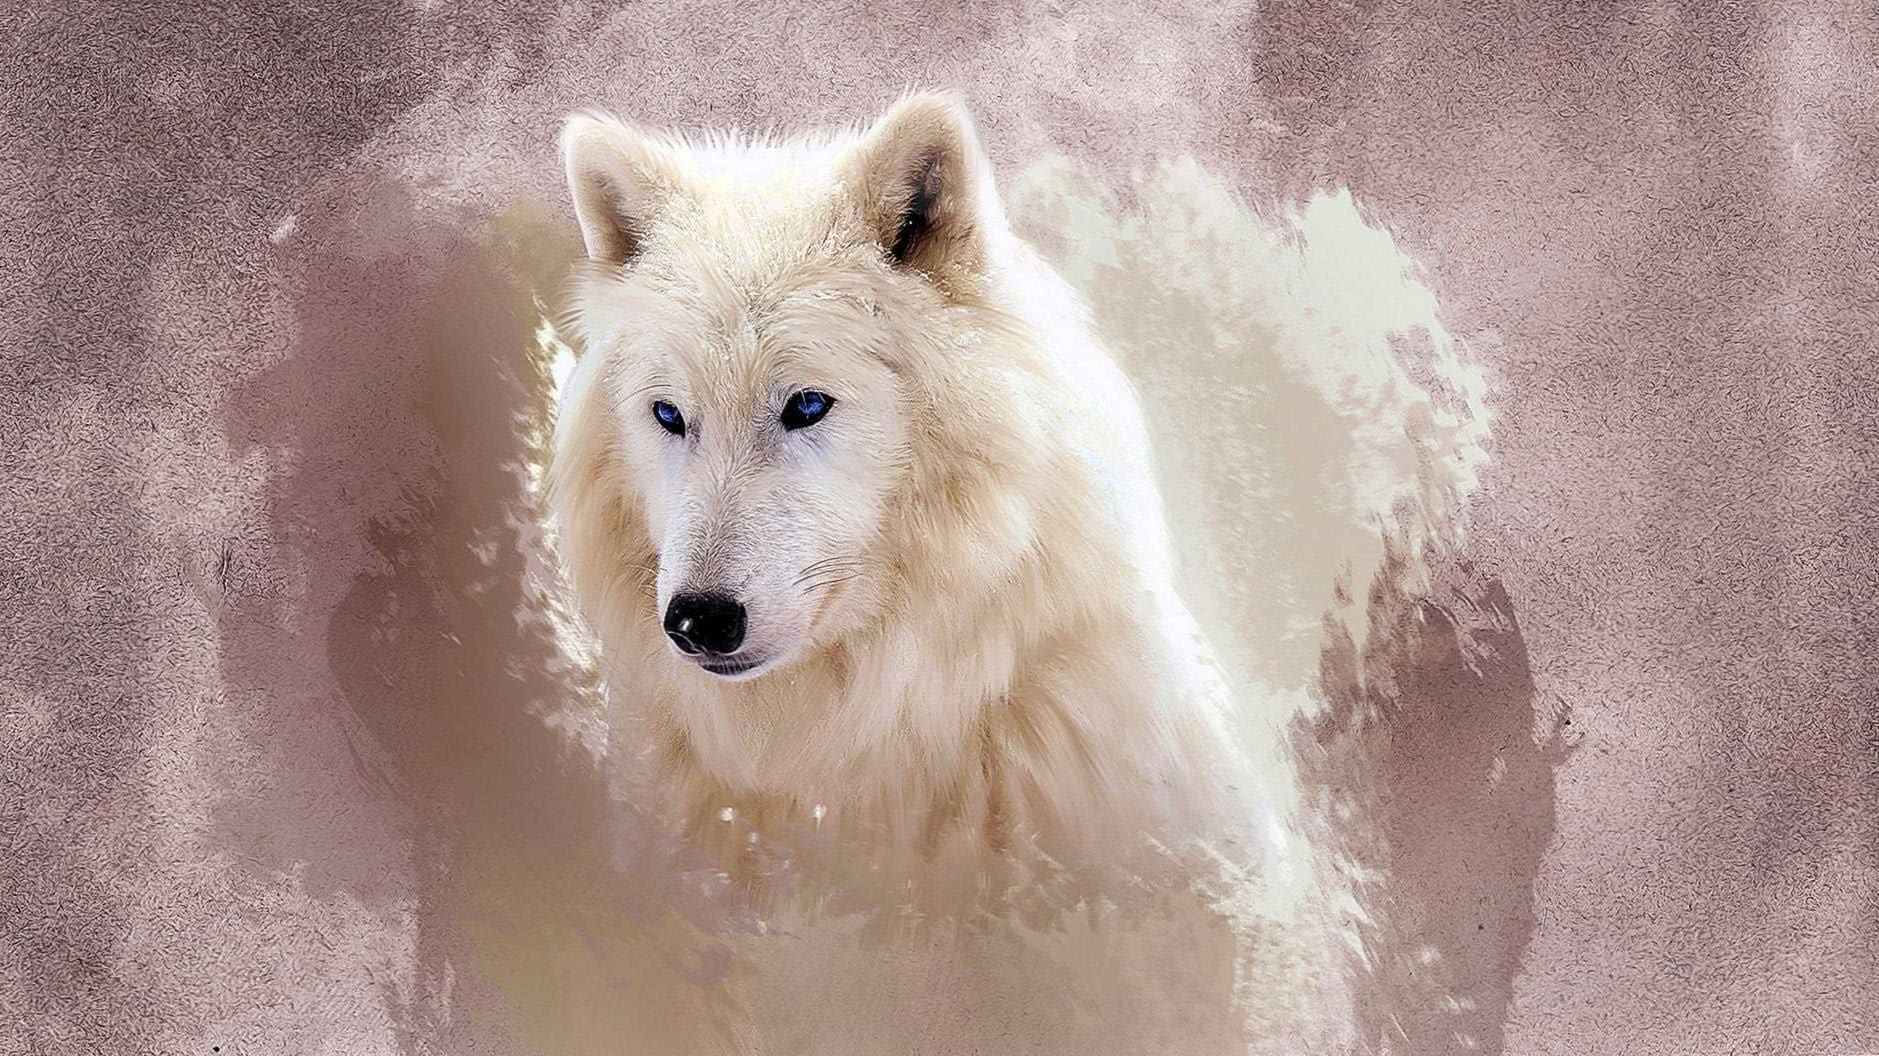 The Wolf Wallpapers HD